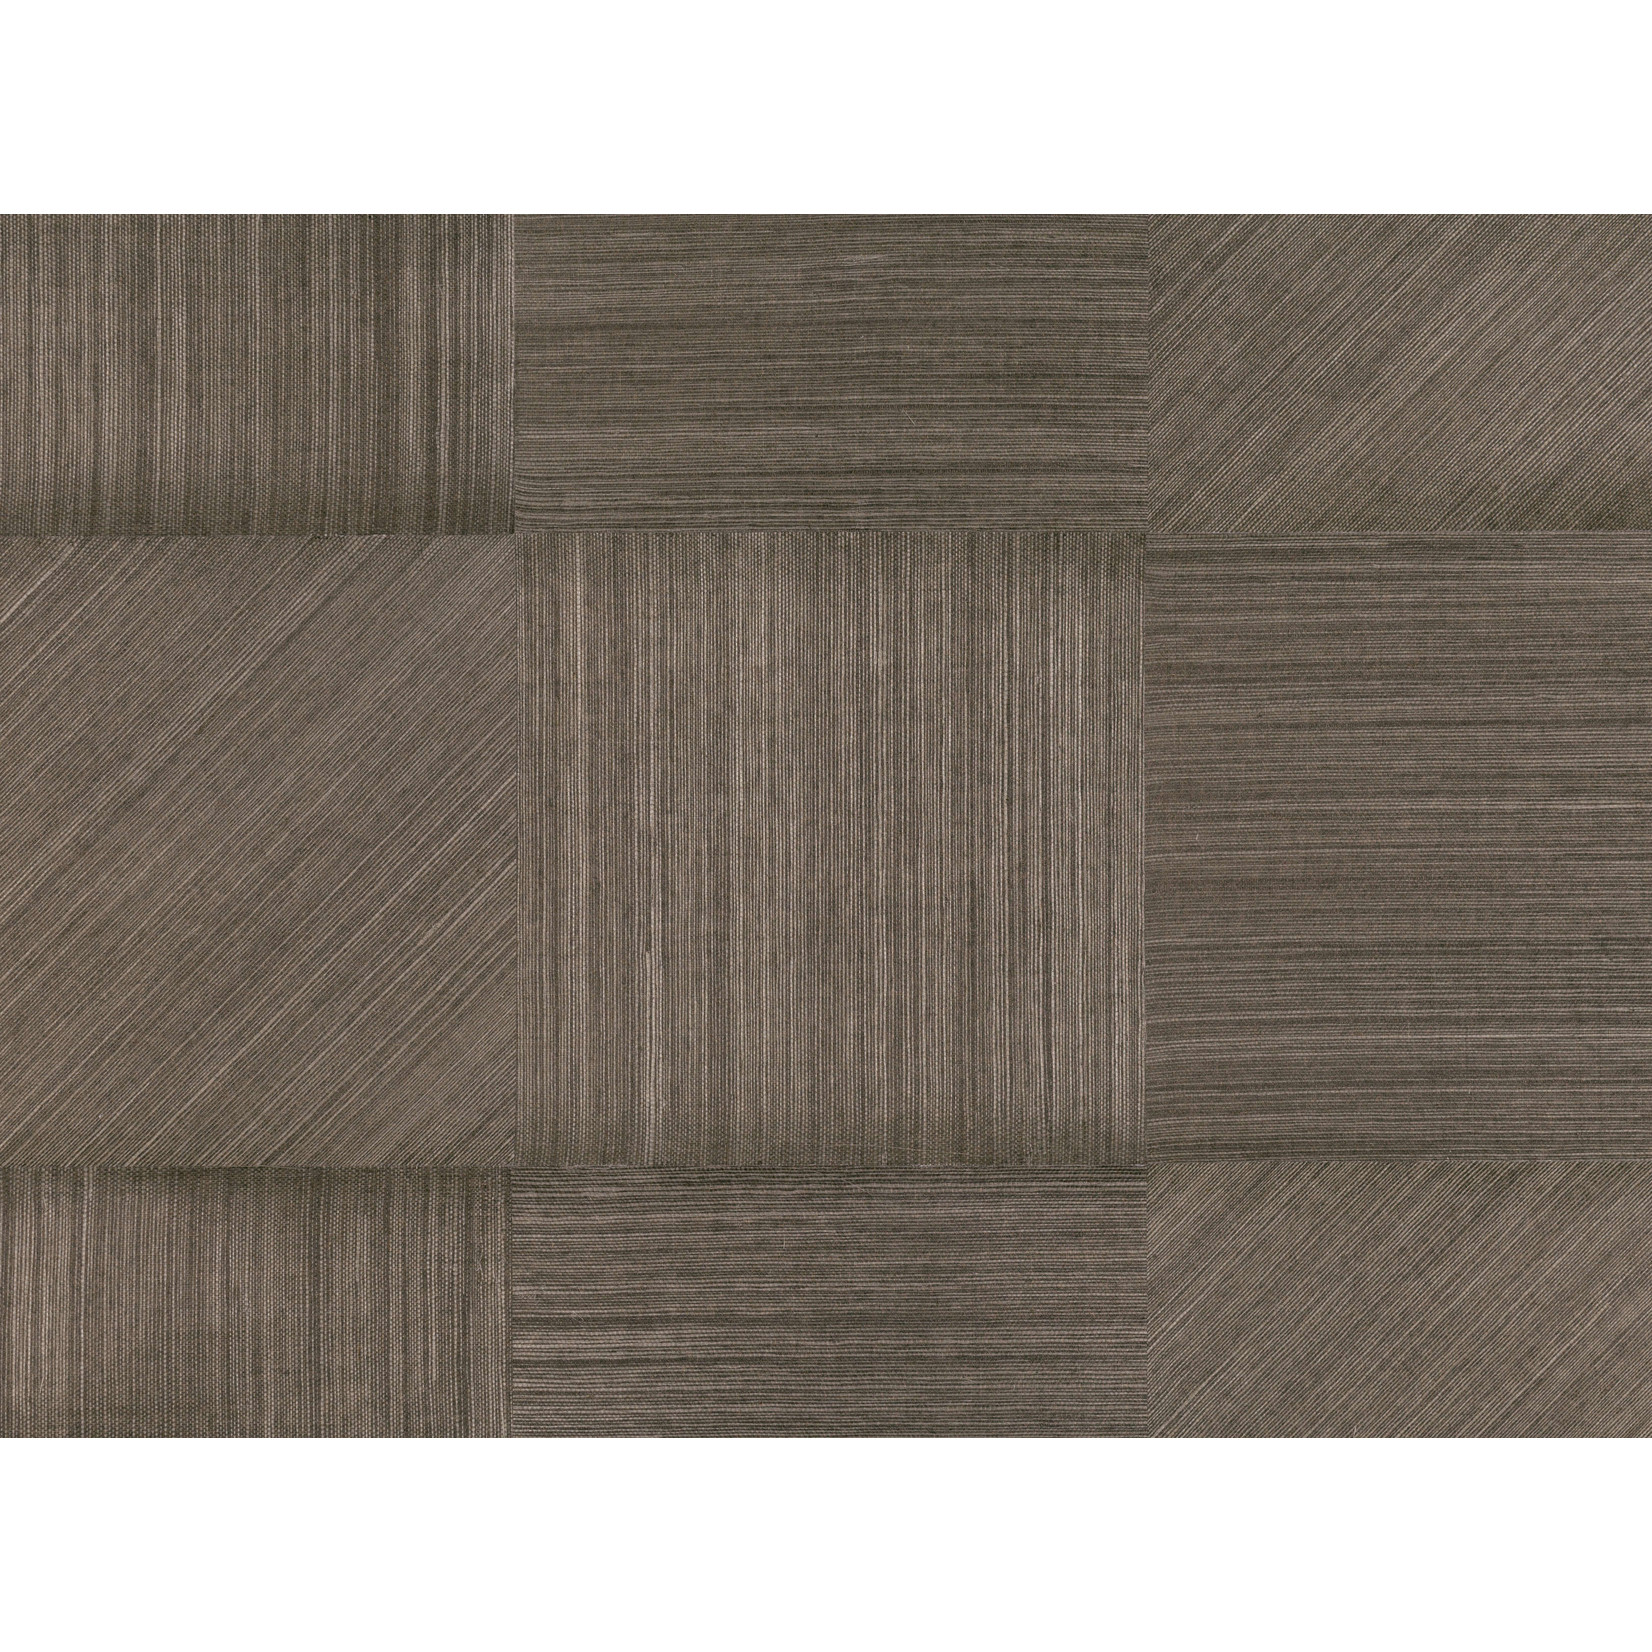 Mark Alexander Collage Handcrafted Wallcoverings   Square Cut Chestnut